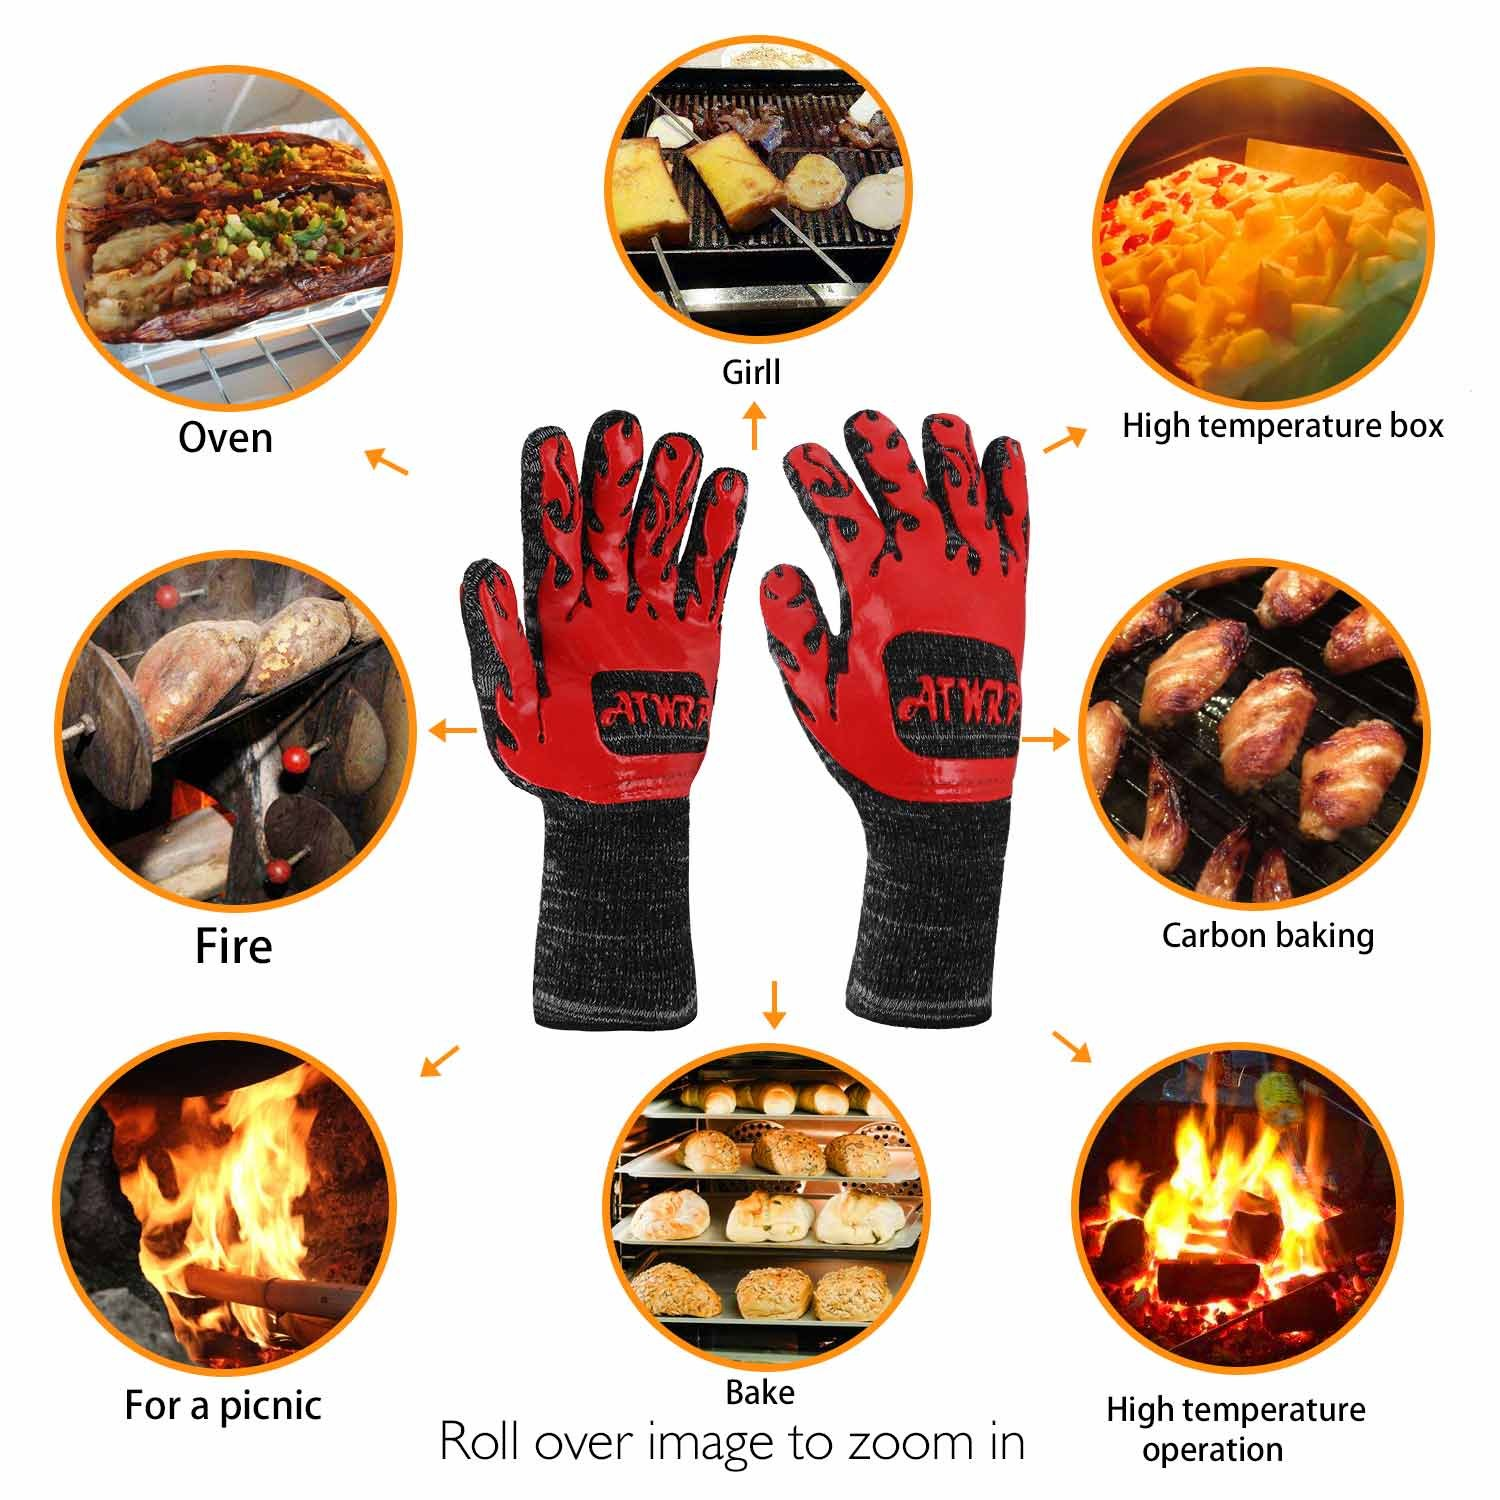 ATWRP FIREPROOF 932°F Extreme Heat Resistant BBQ Gloves by for Cooking Grilling Barbecue Charcoal Grill Smoker Tools Hot Ovens with Fingers Double Layered by ATWRP (Image #4)